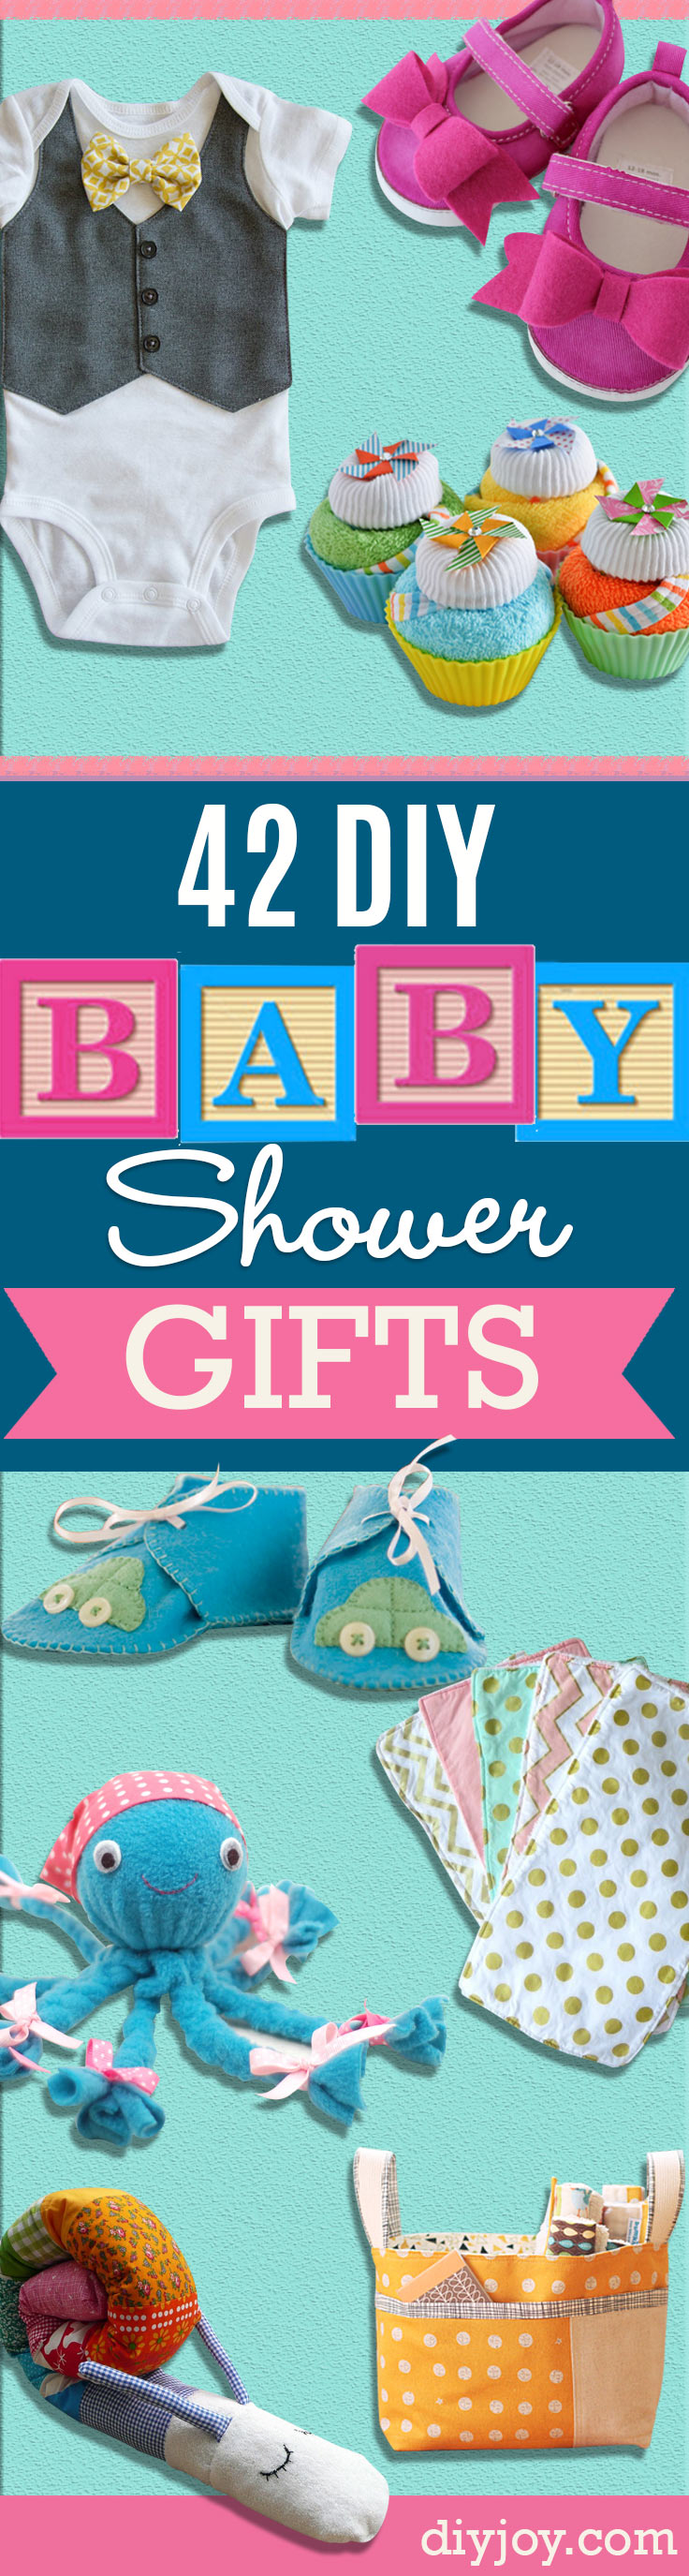 news com unique baby hollamama blogs shower gifts progressive